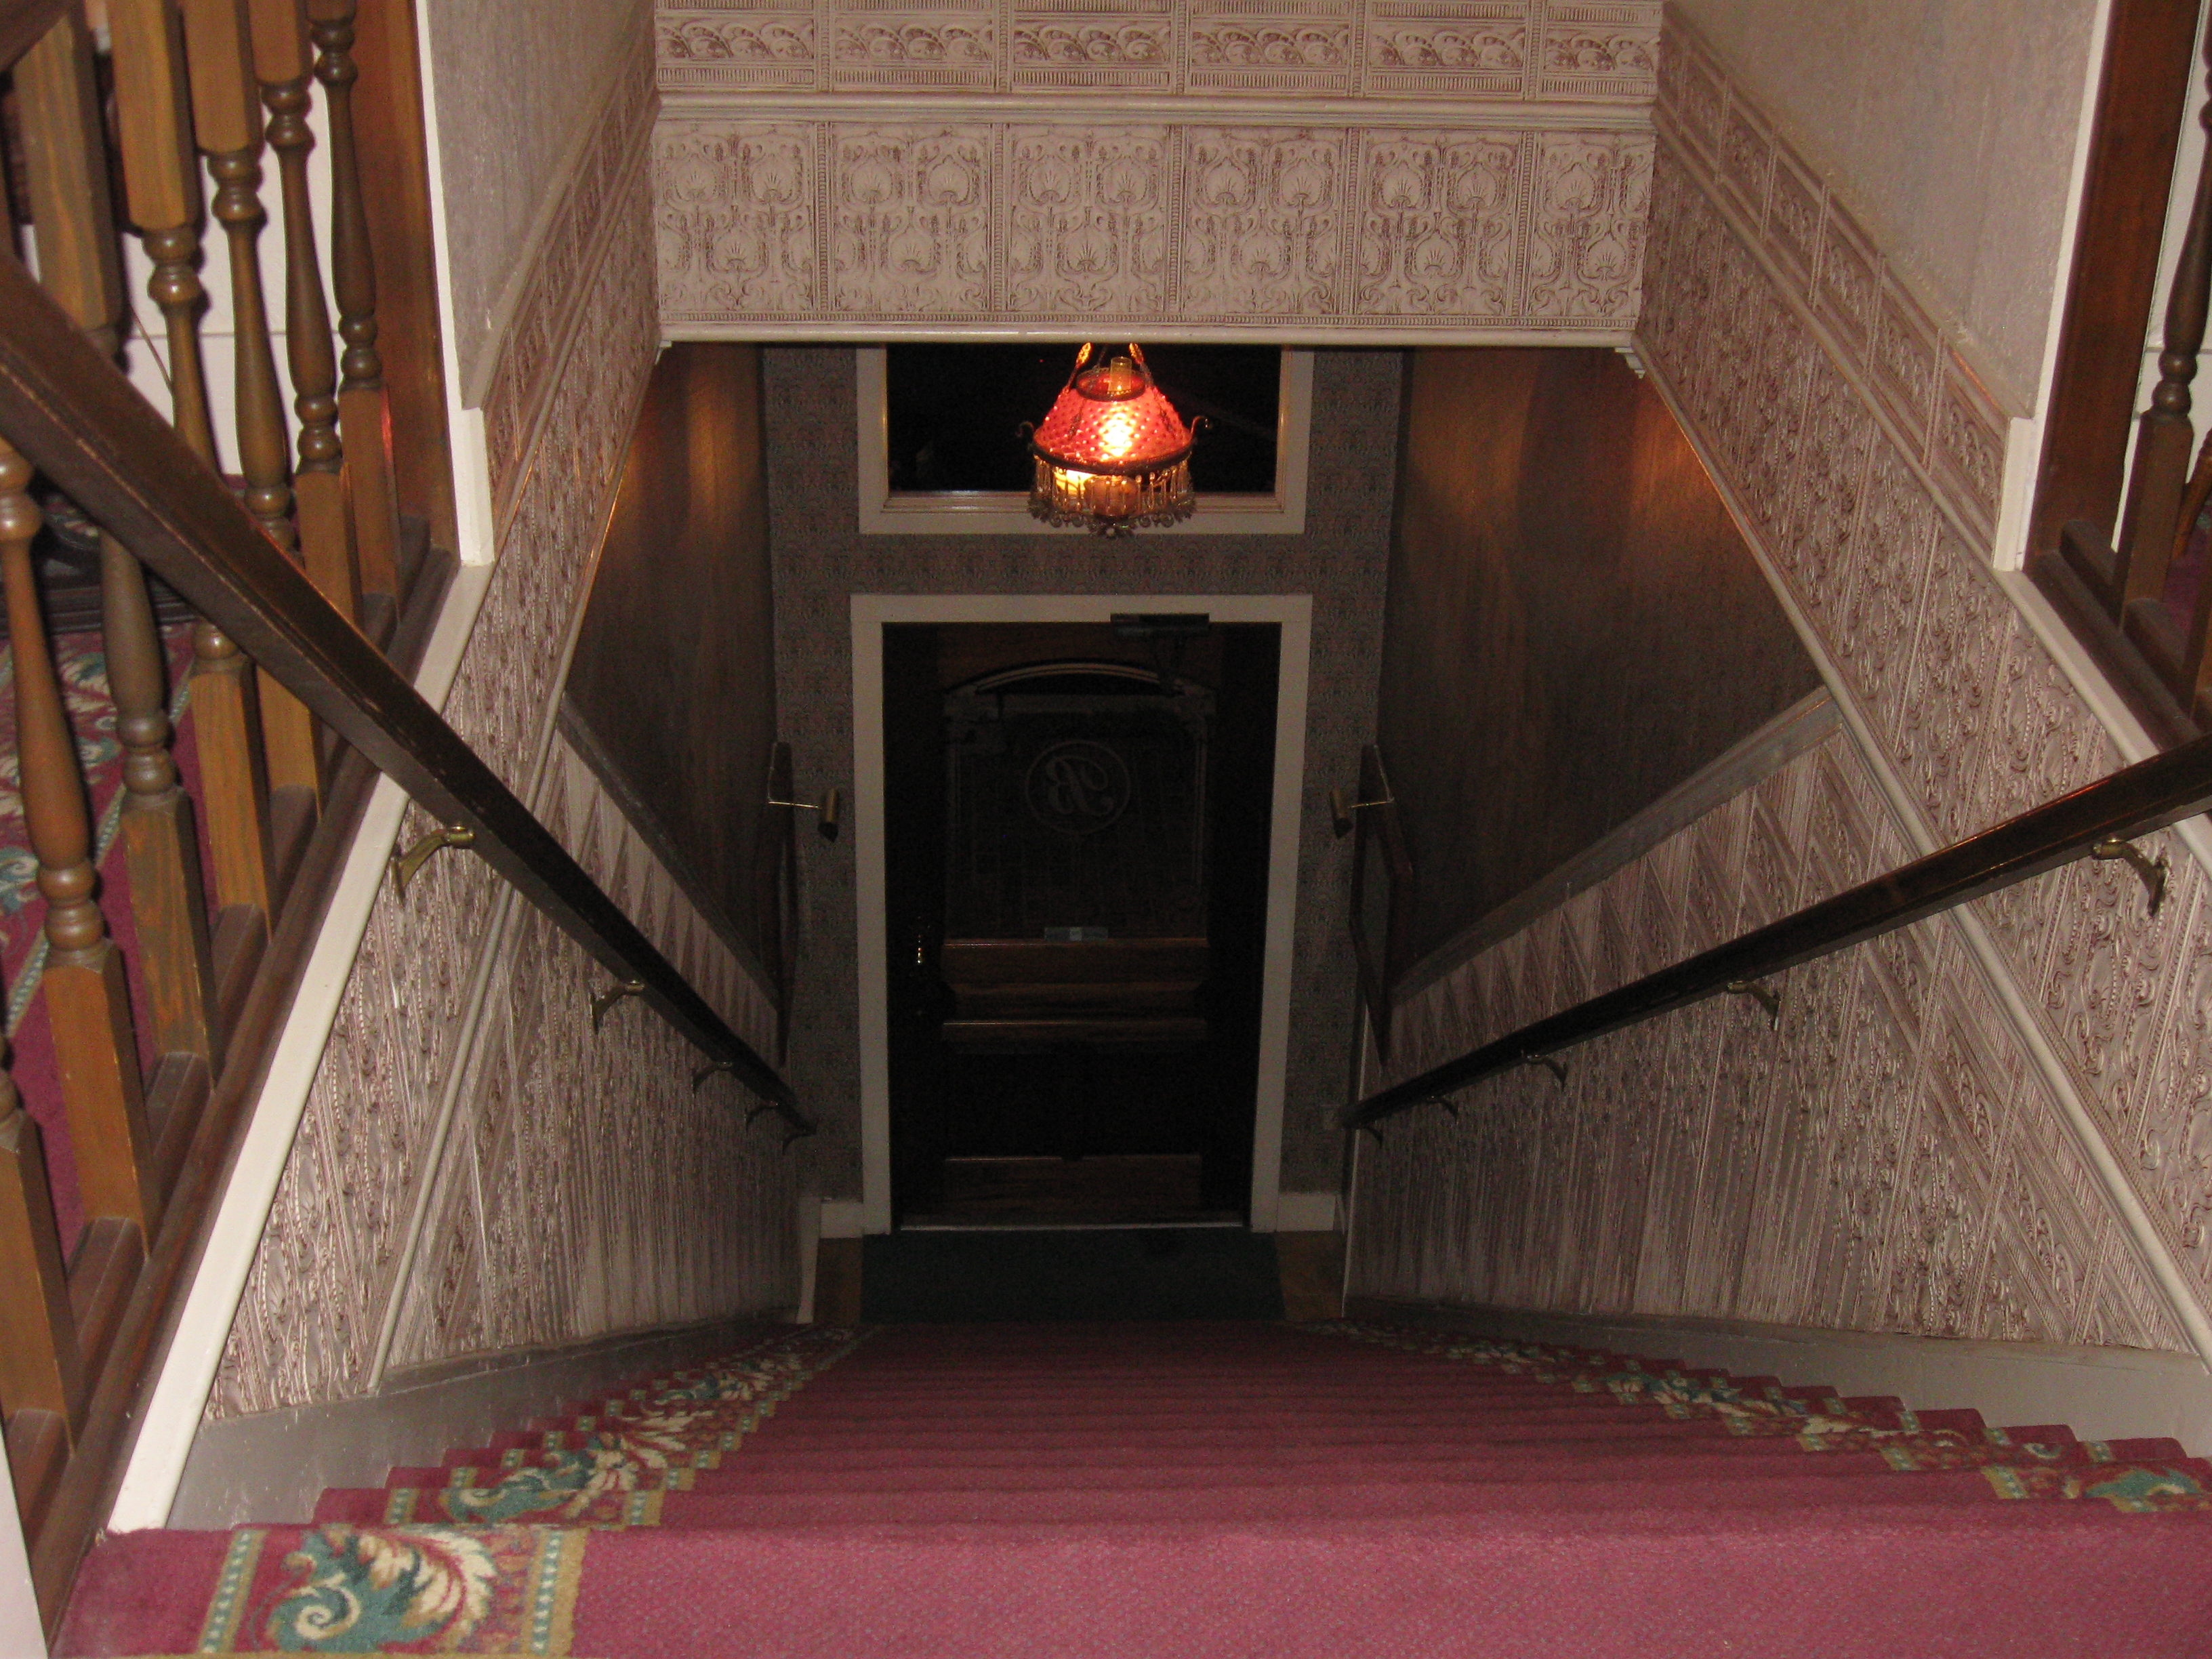 Stairs bishop victorian hotel port townsend washington